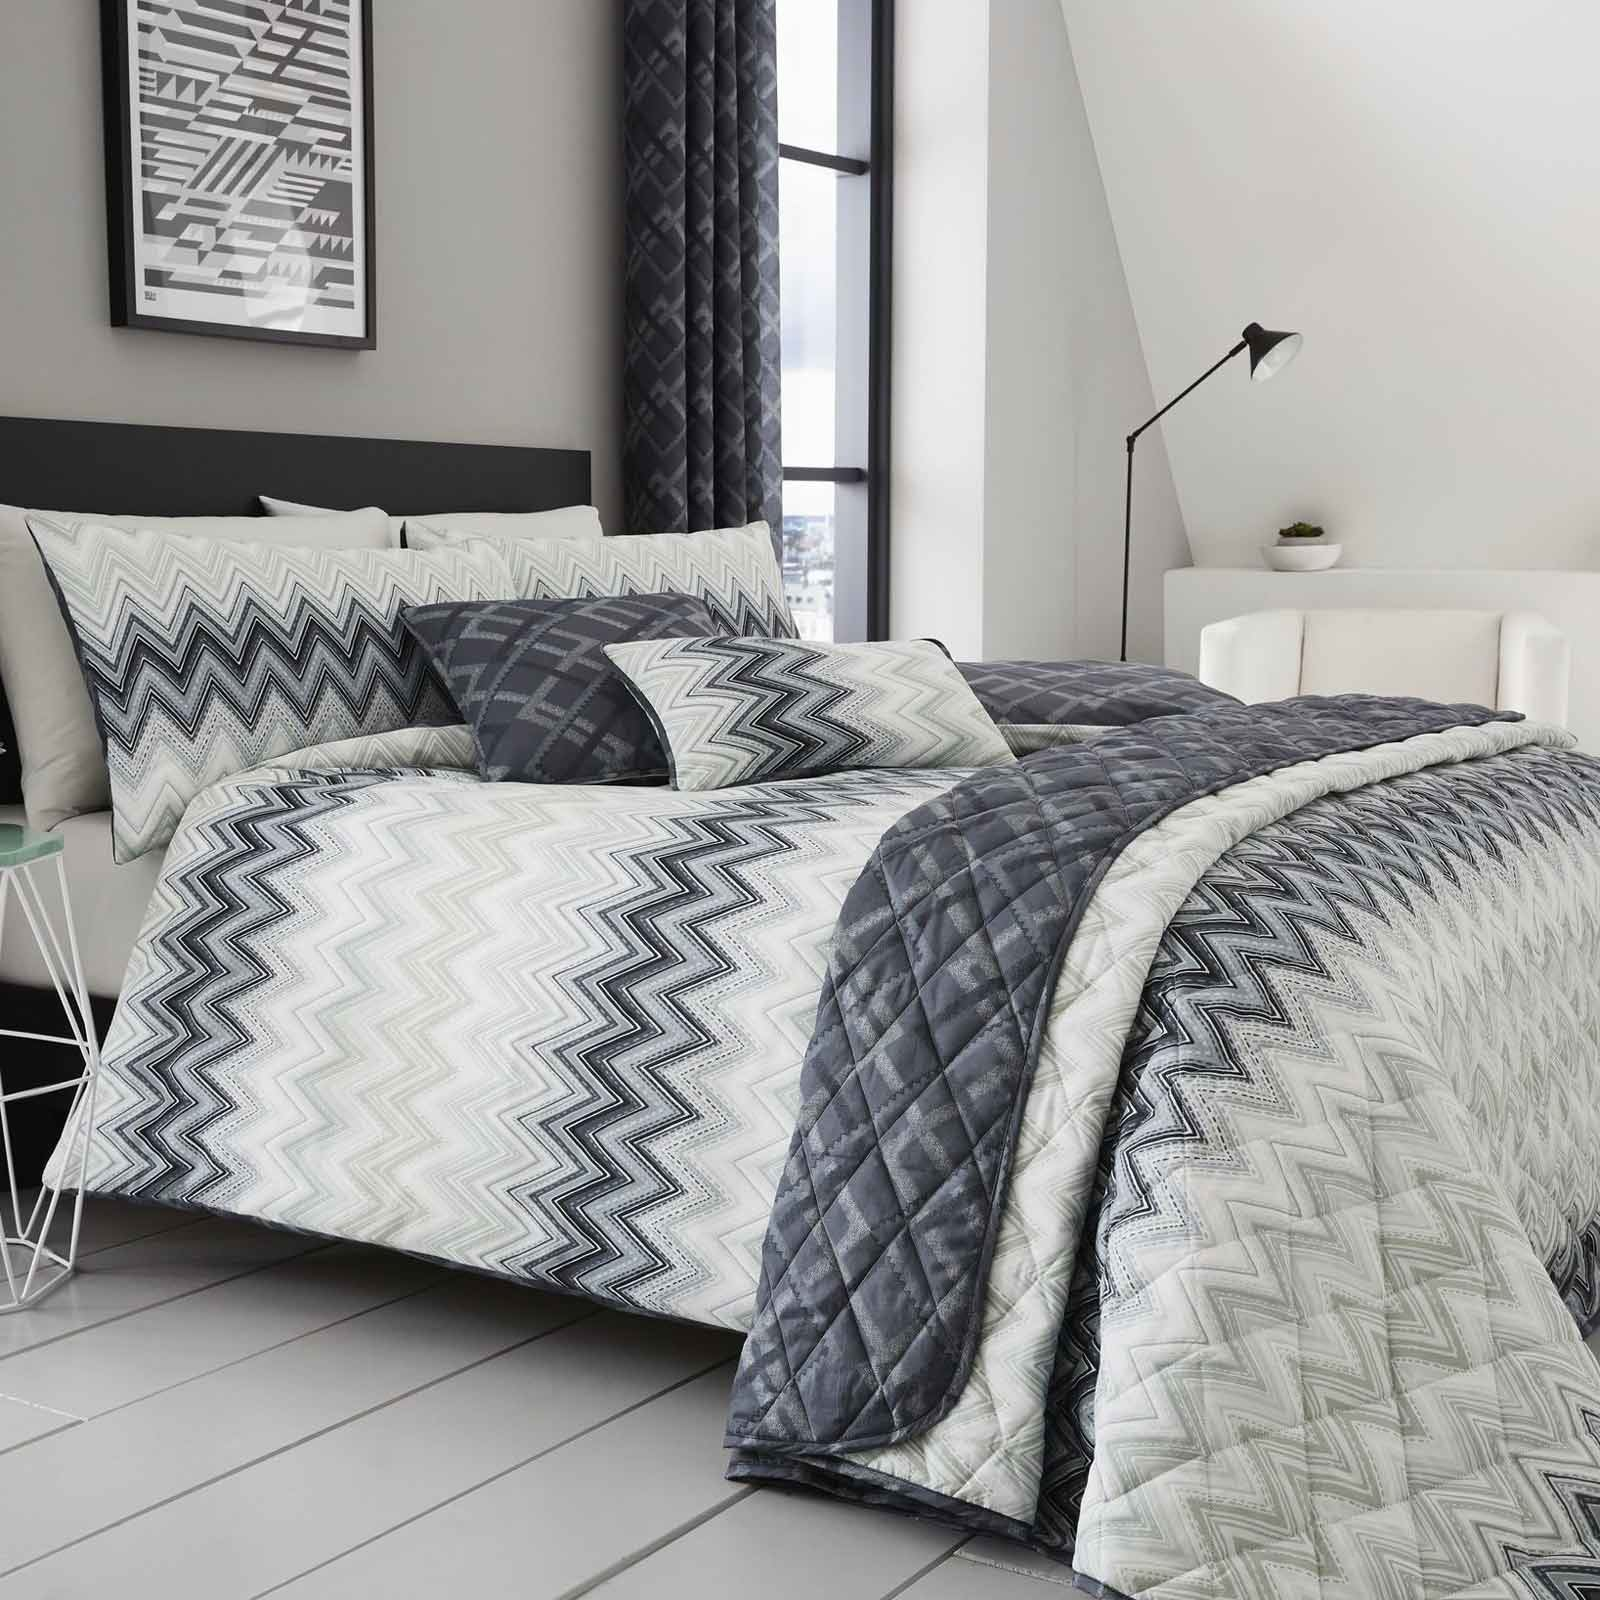 Charcoal Grey Bedding Ombre Luxury Duvet Covers Geometric Chevron Bedding